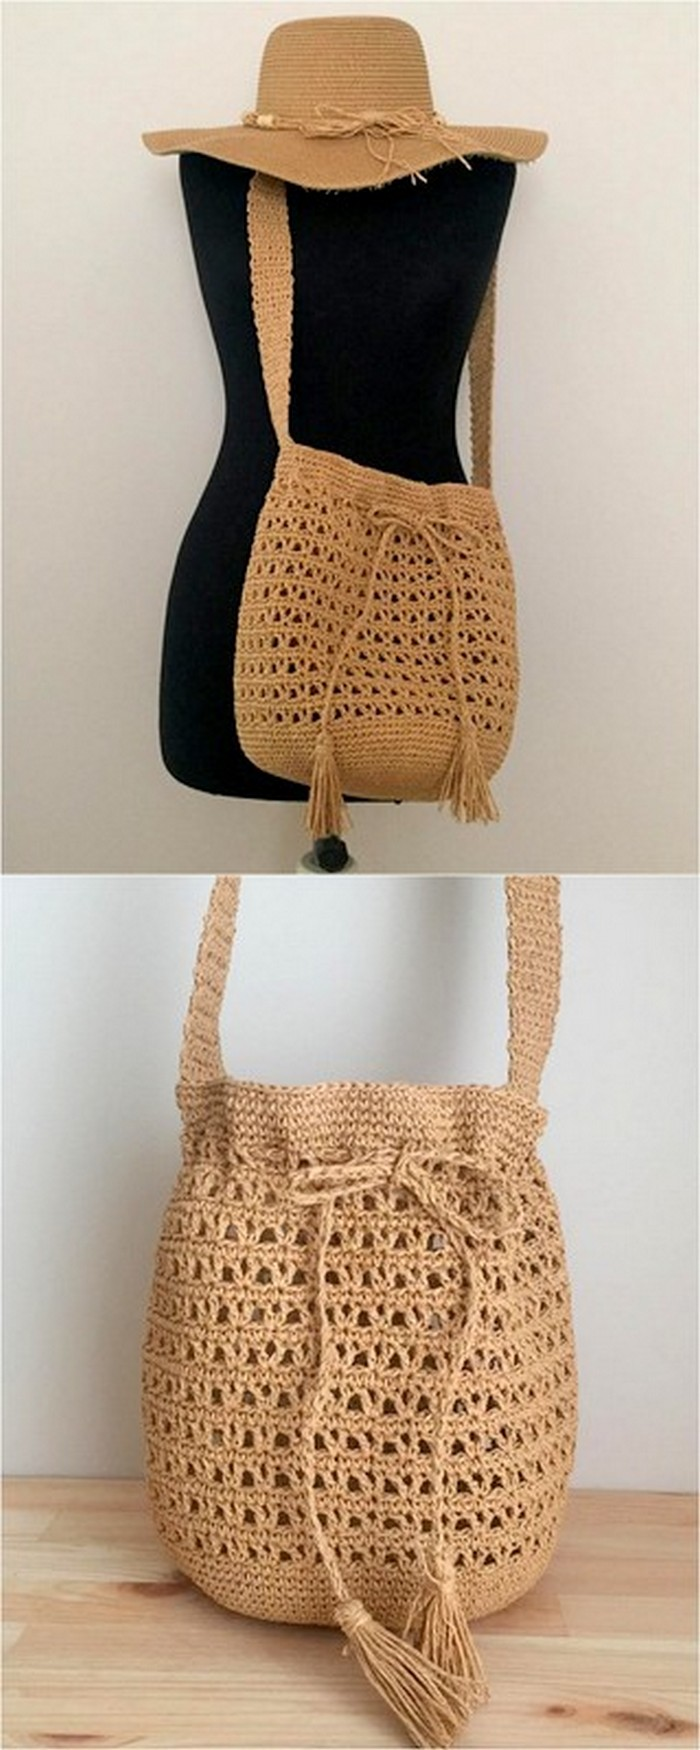 stylish crochet pattern for hat and bag